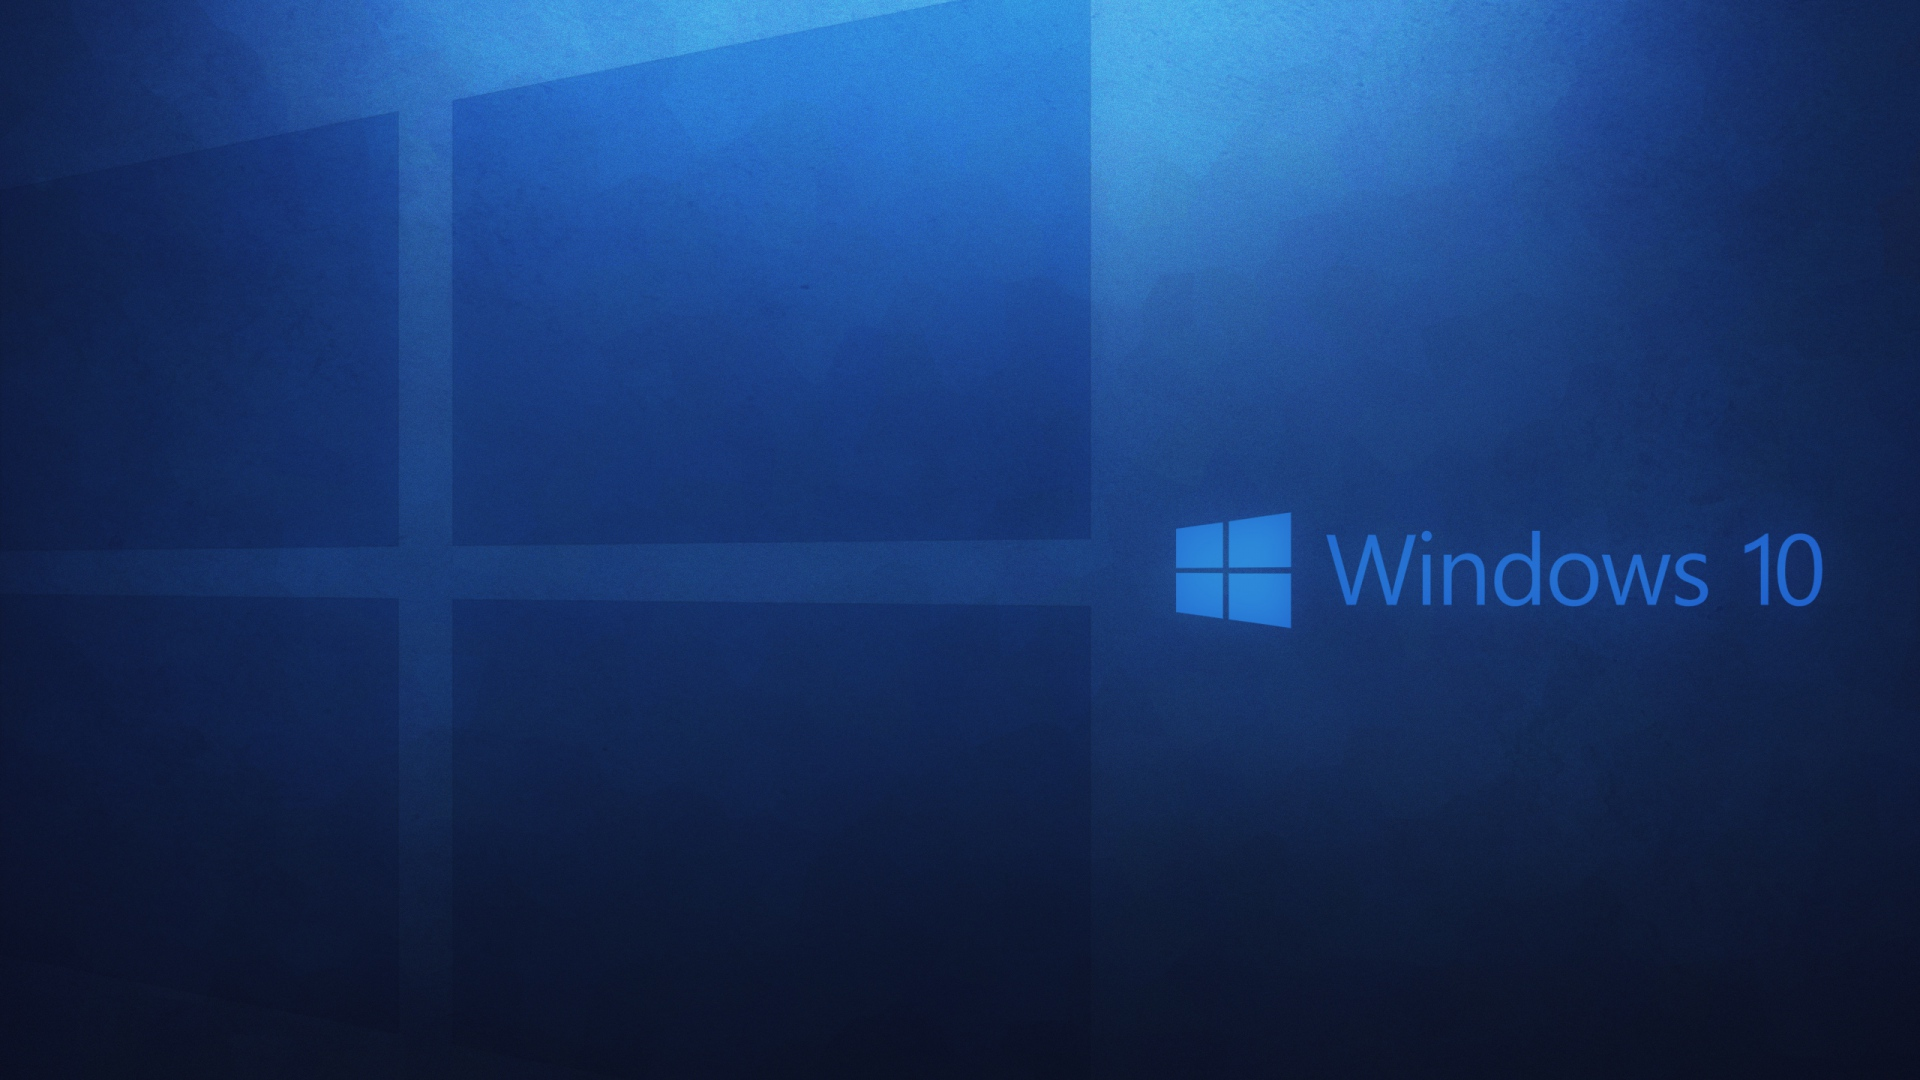 HD Background Windows 10 Wallpaper Microsoft Operating System Blue 1920x1080